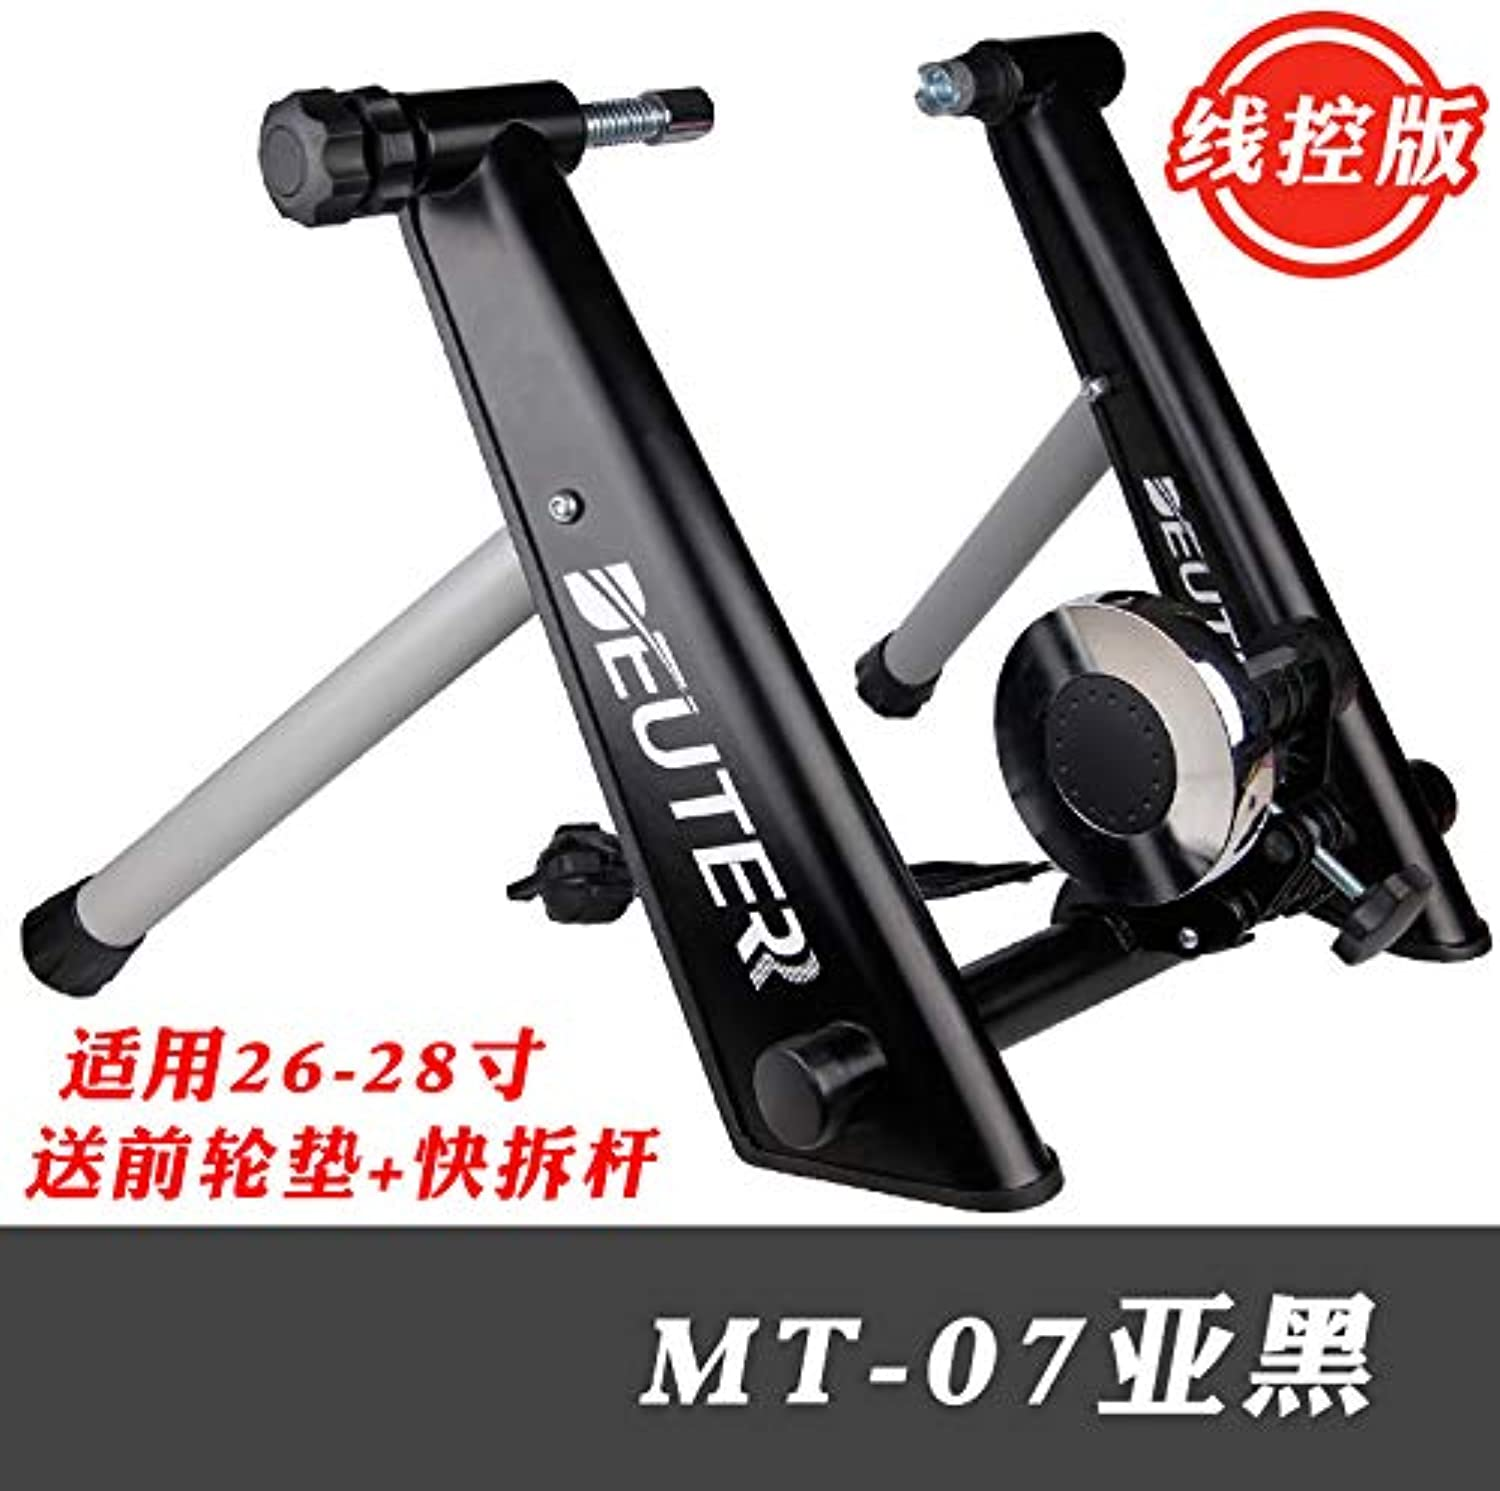 Mountain Bike Indoor Cycling Stage Road Bike Frame House Training Trainer Train Station Reluctance Riding Shelf